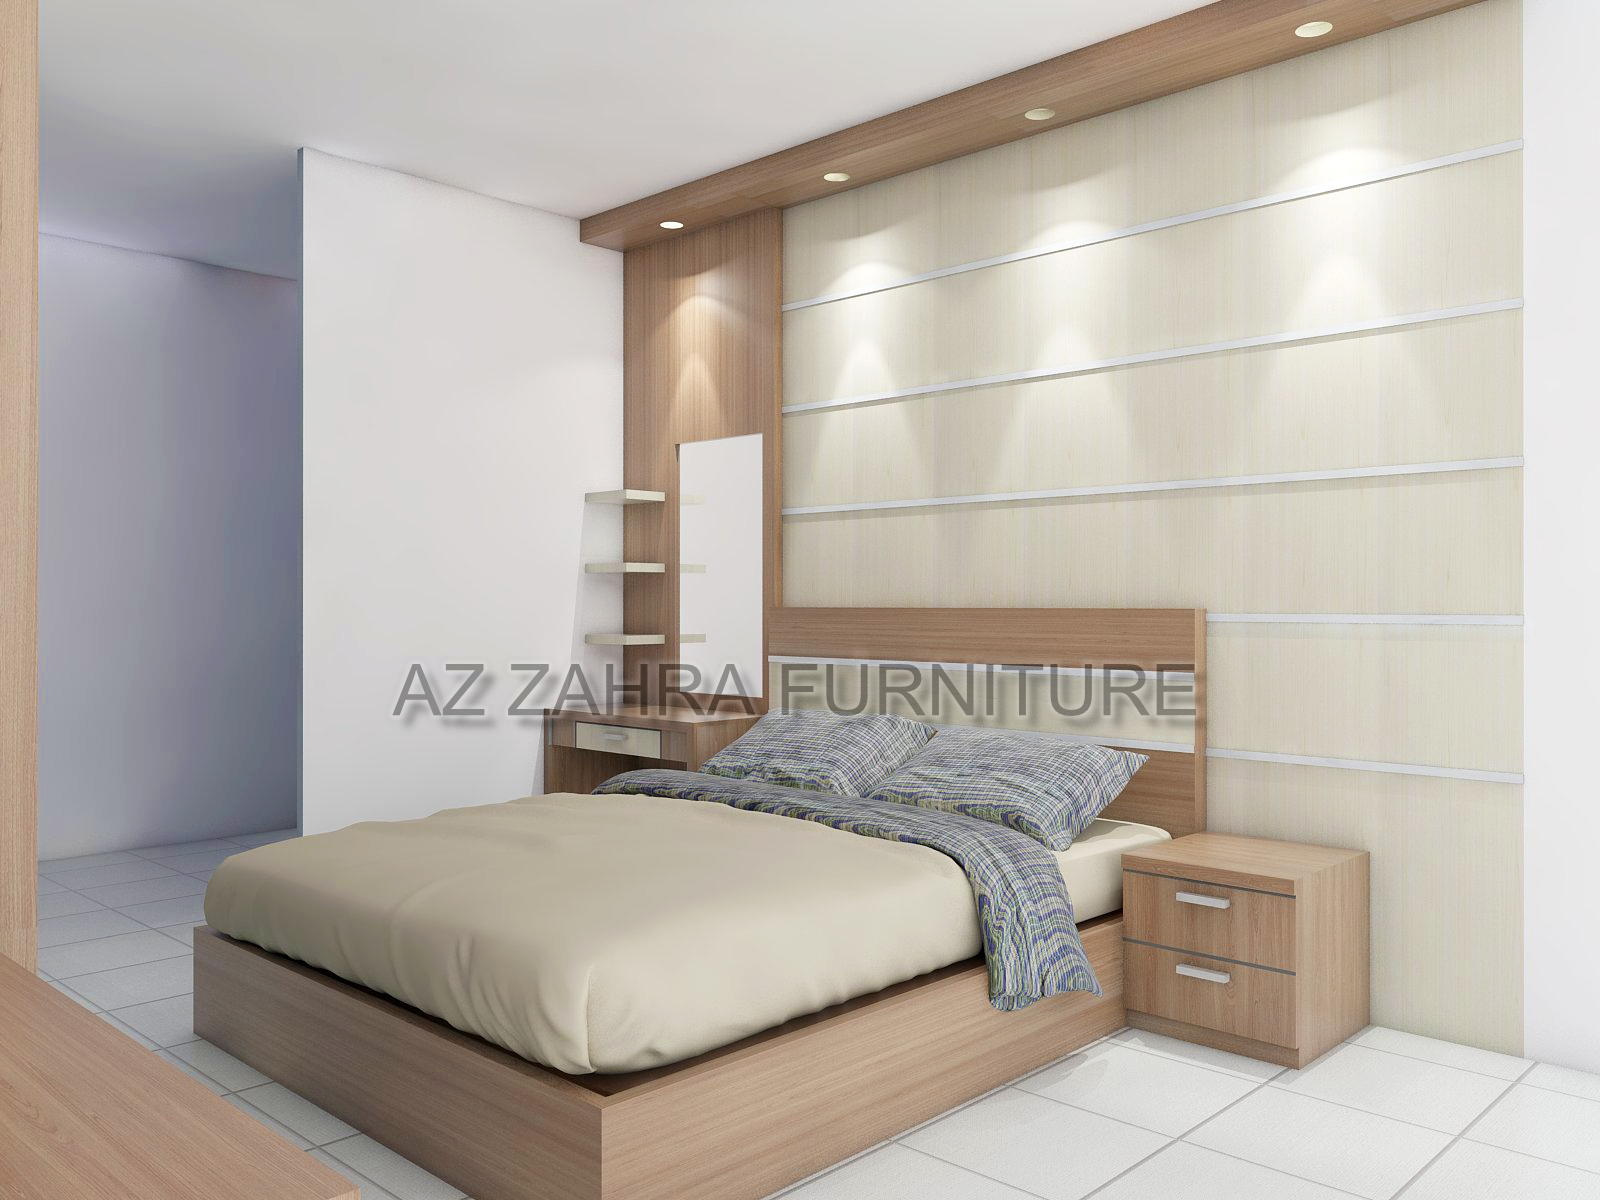 Furniture Interior Demak Azzahra Furniture # Muebles Rapi Estant